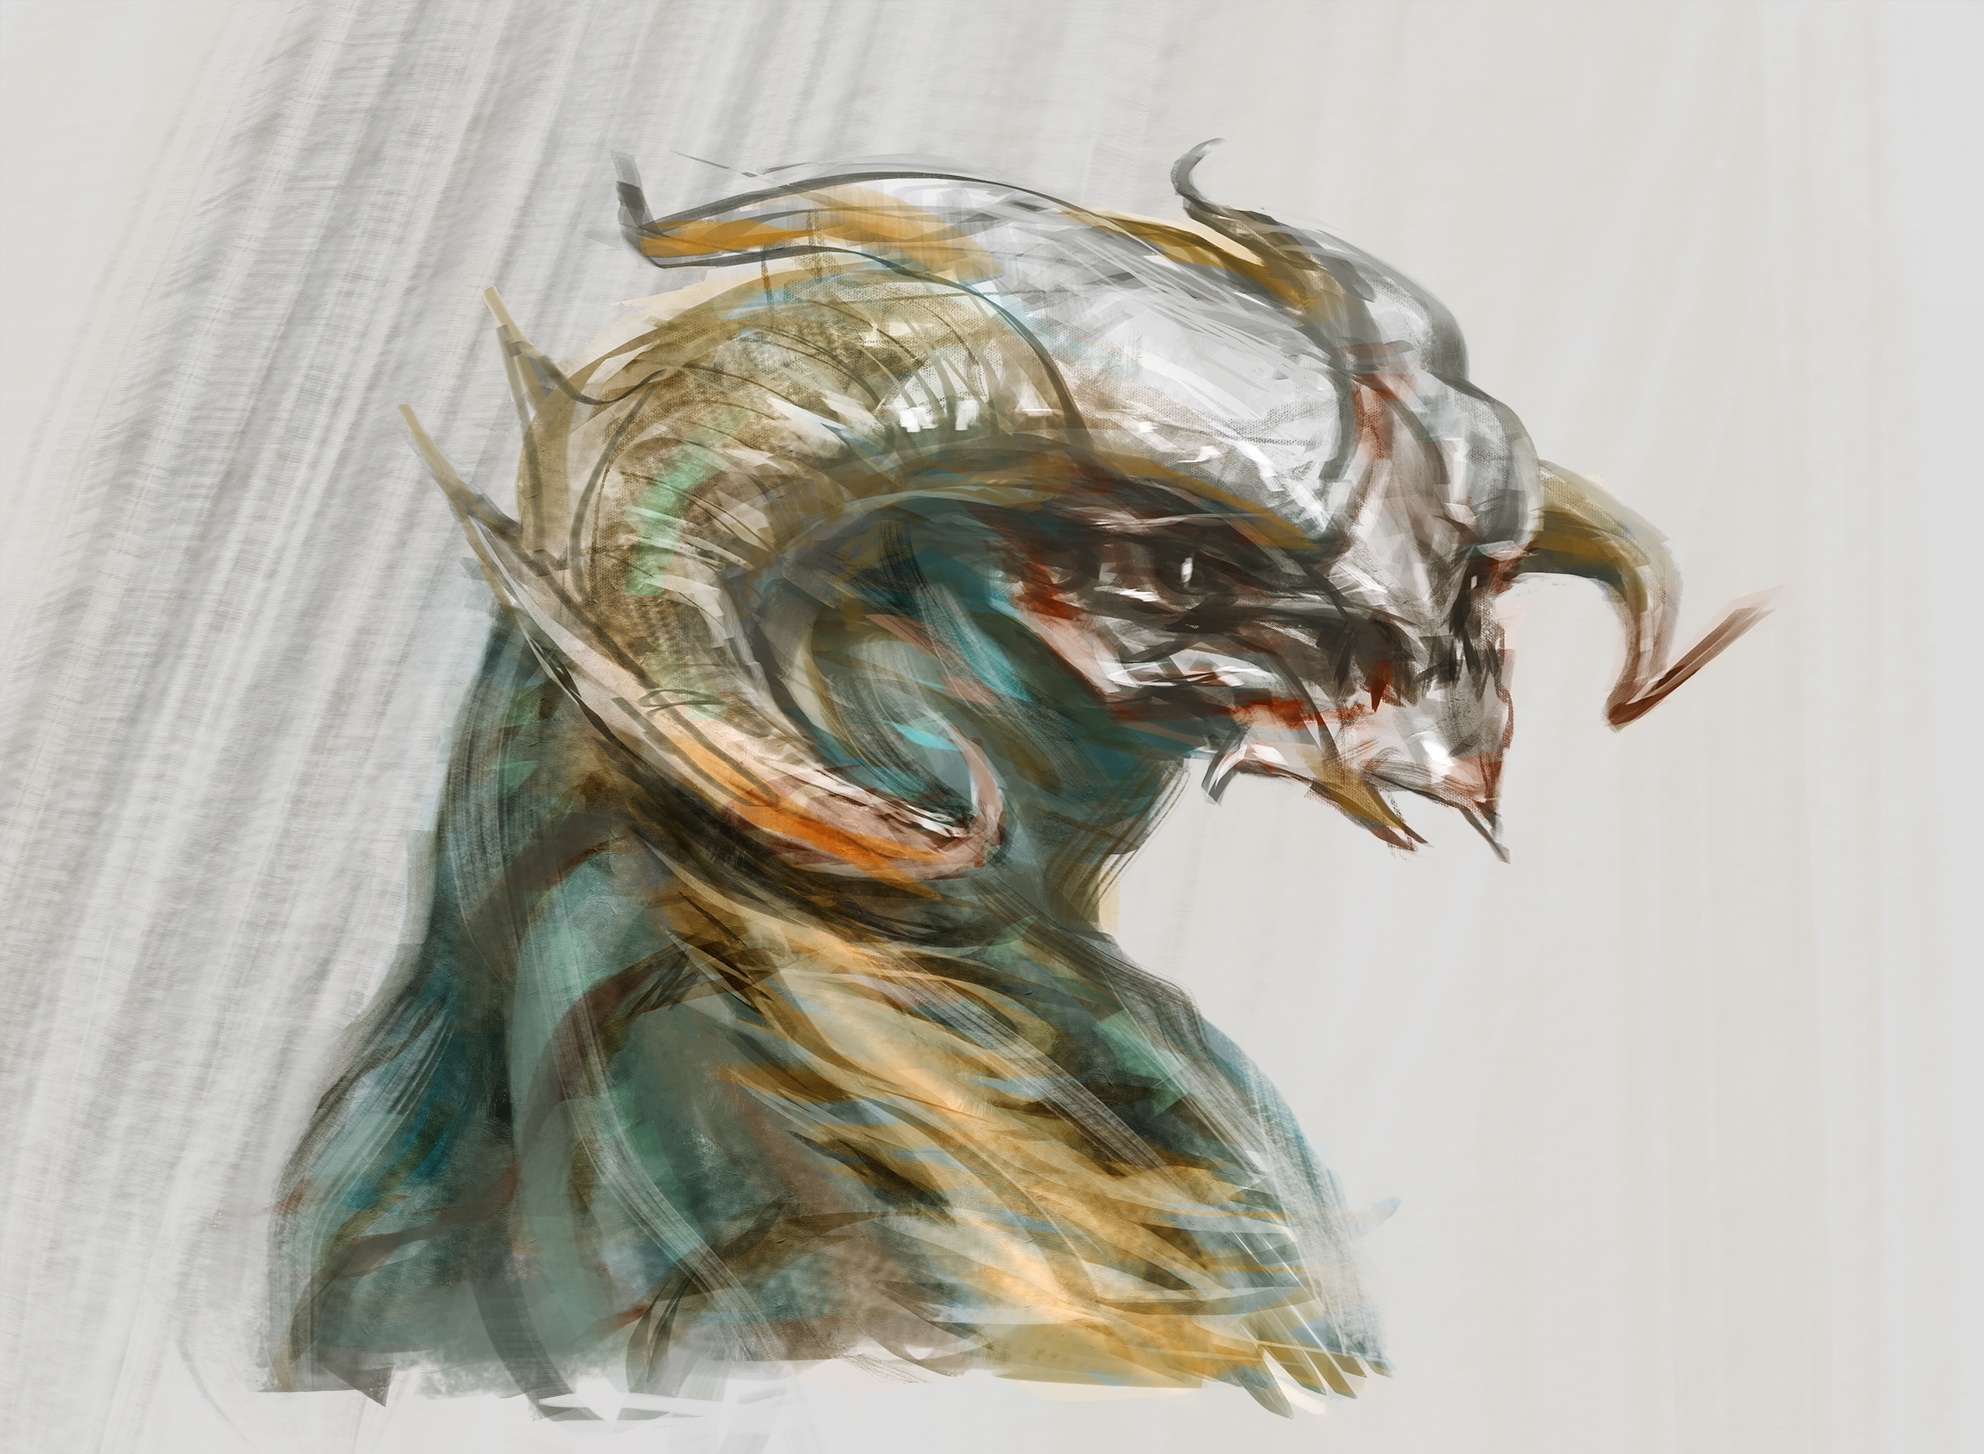 Concept Art & Design - Concept Art and Design for Production, including Characters, Creatures, Environments, Vehicles and Props, across a range of genres for Films, Visual Effects, Games and Commercial Projects.